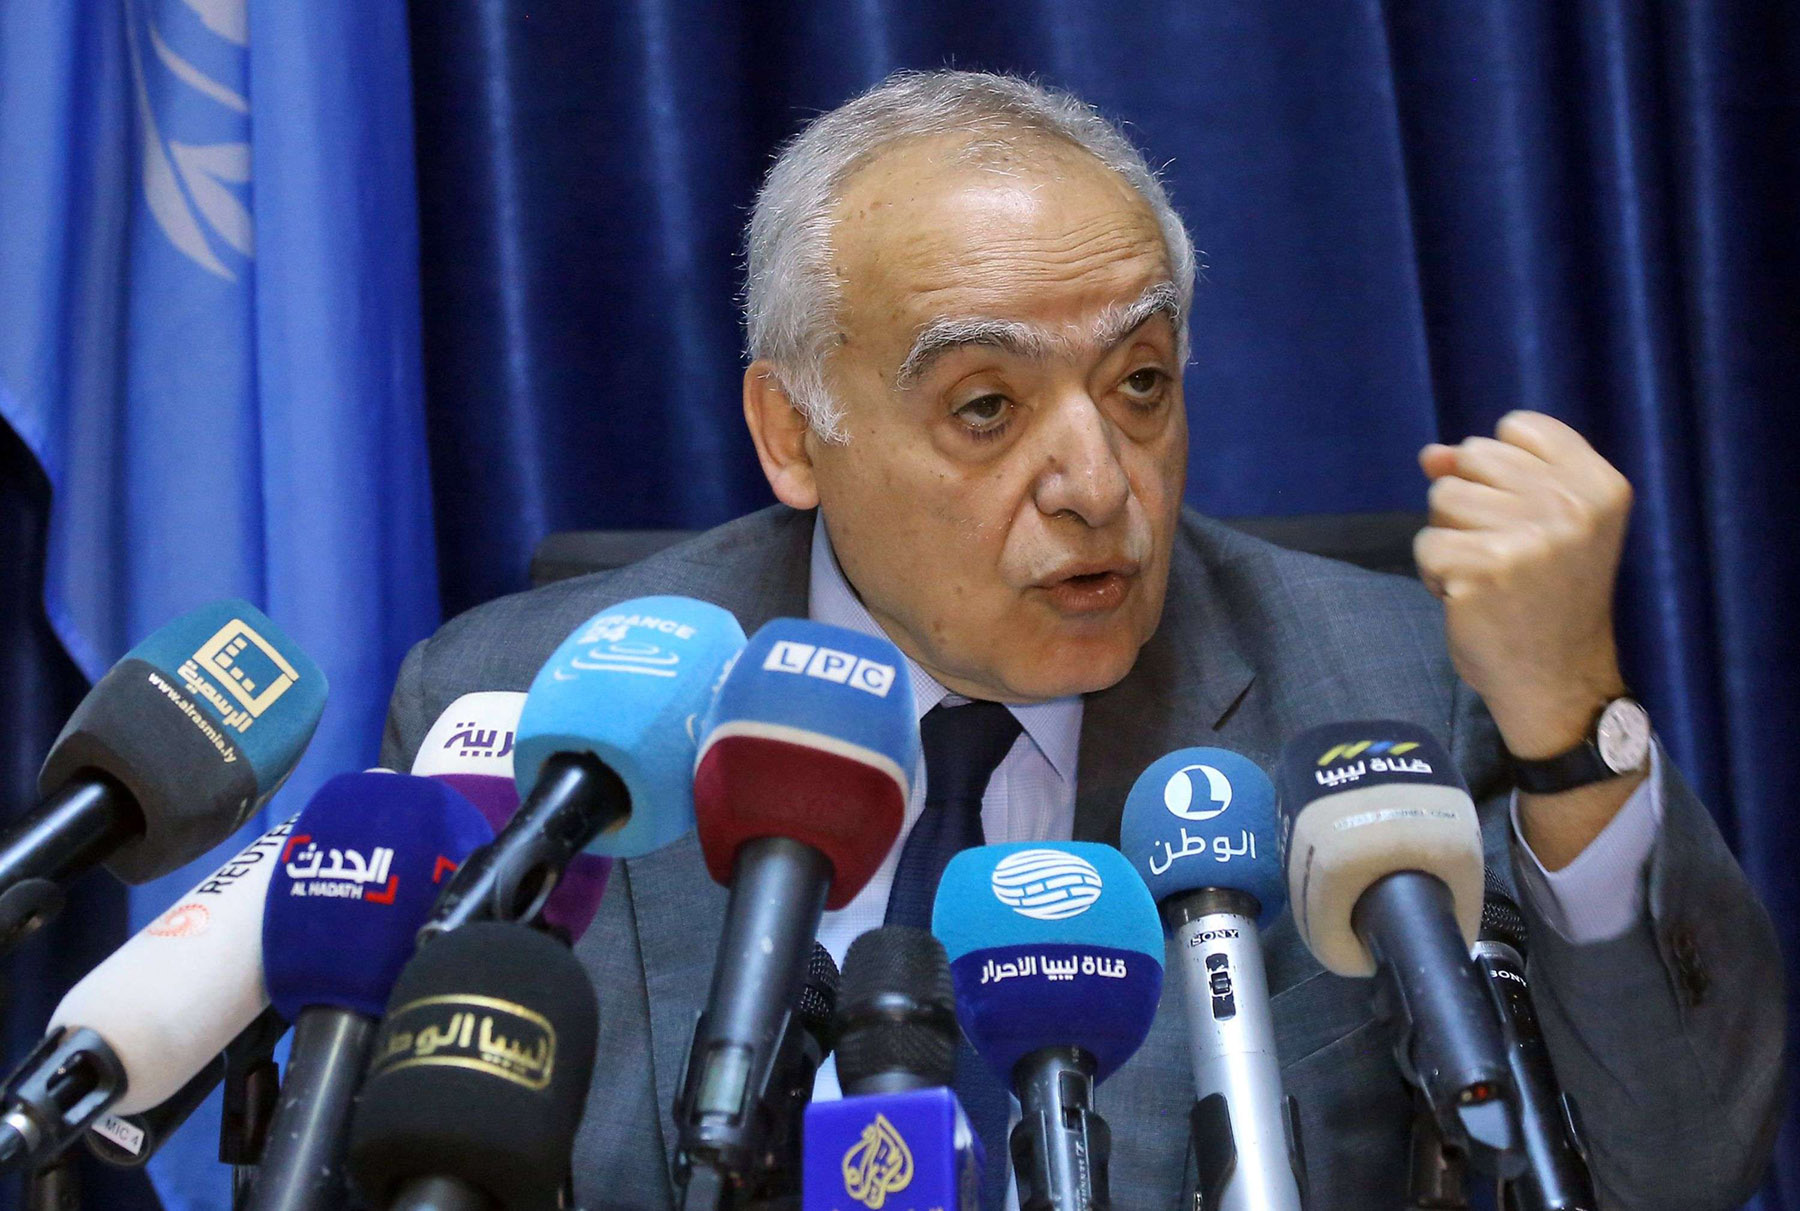 UN Special Envoy to Libya Ghassan Salame delivers a speech in Tripoli, March 20. (AFP)